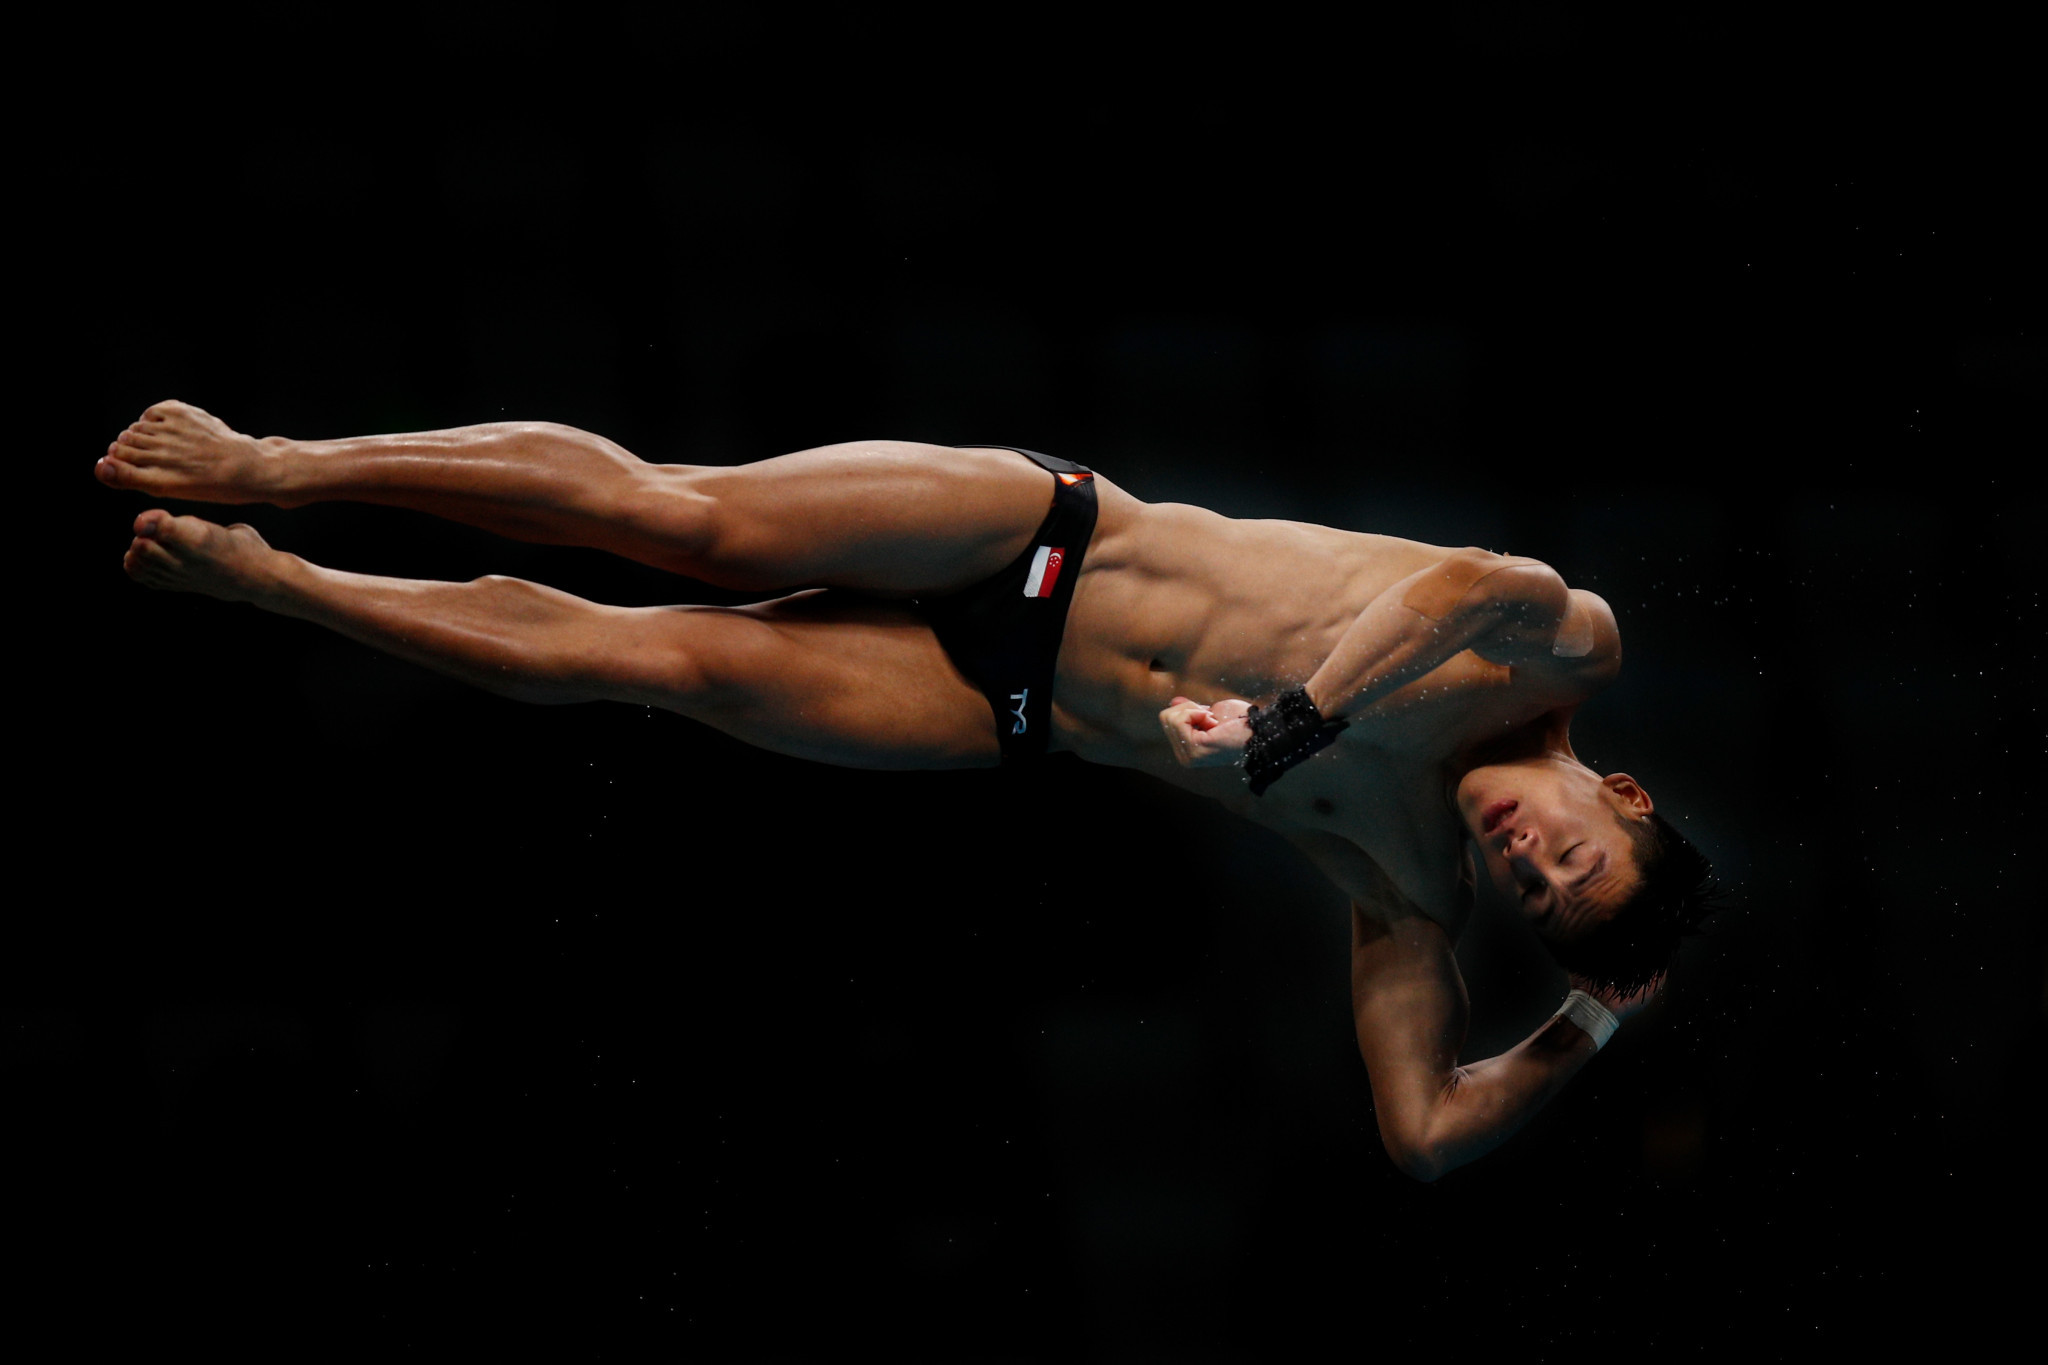 Singapore's Jonathan Chan couldn't challenge the Chinese or Malaysian divers for the gold but left Kuala Lumpur with bronze ©Getty Images